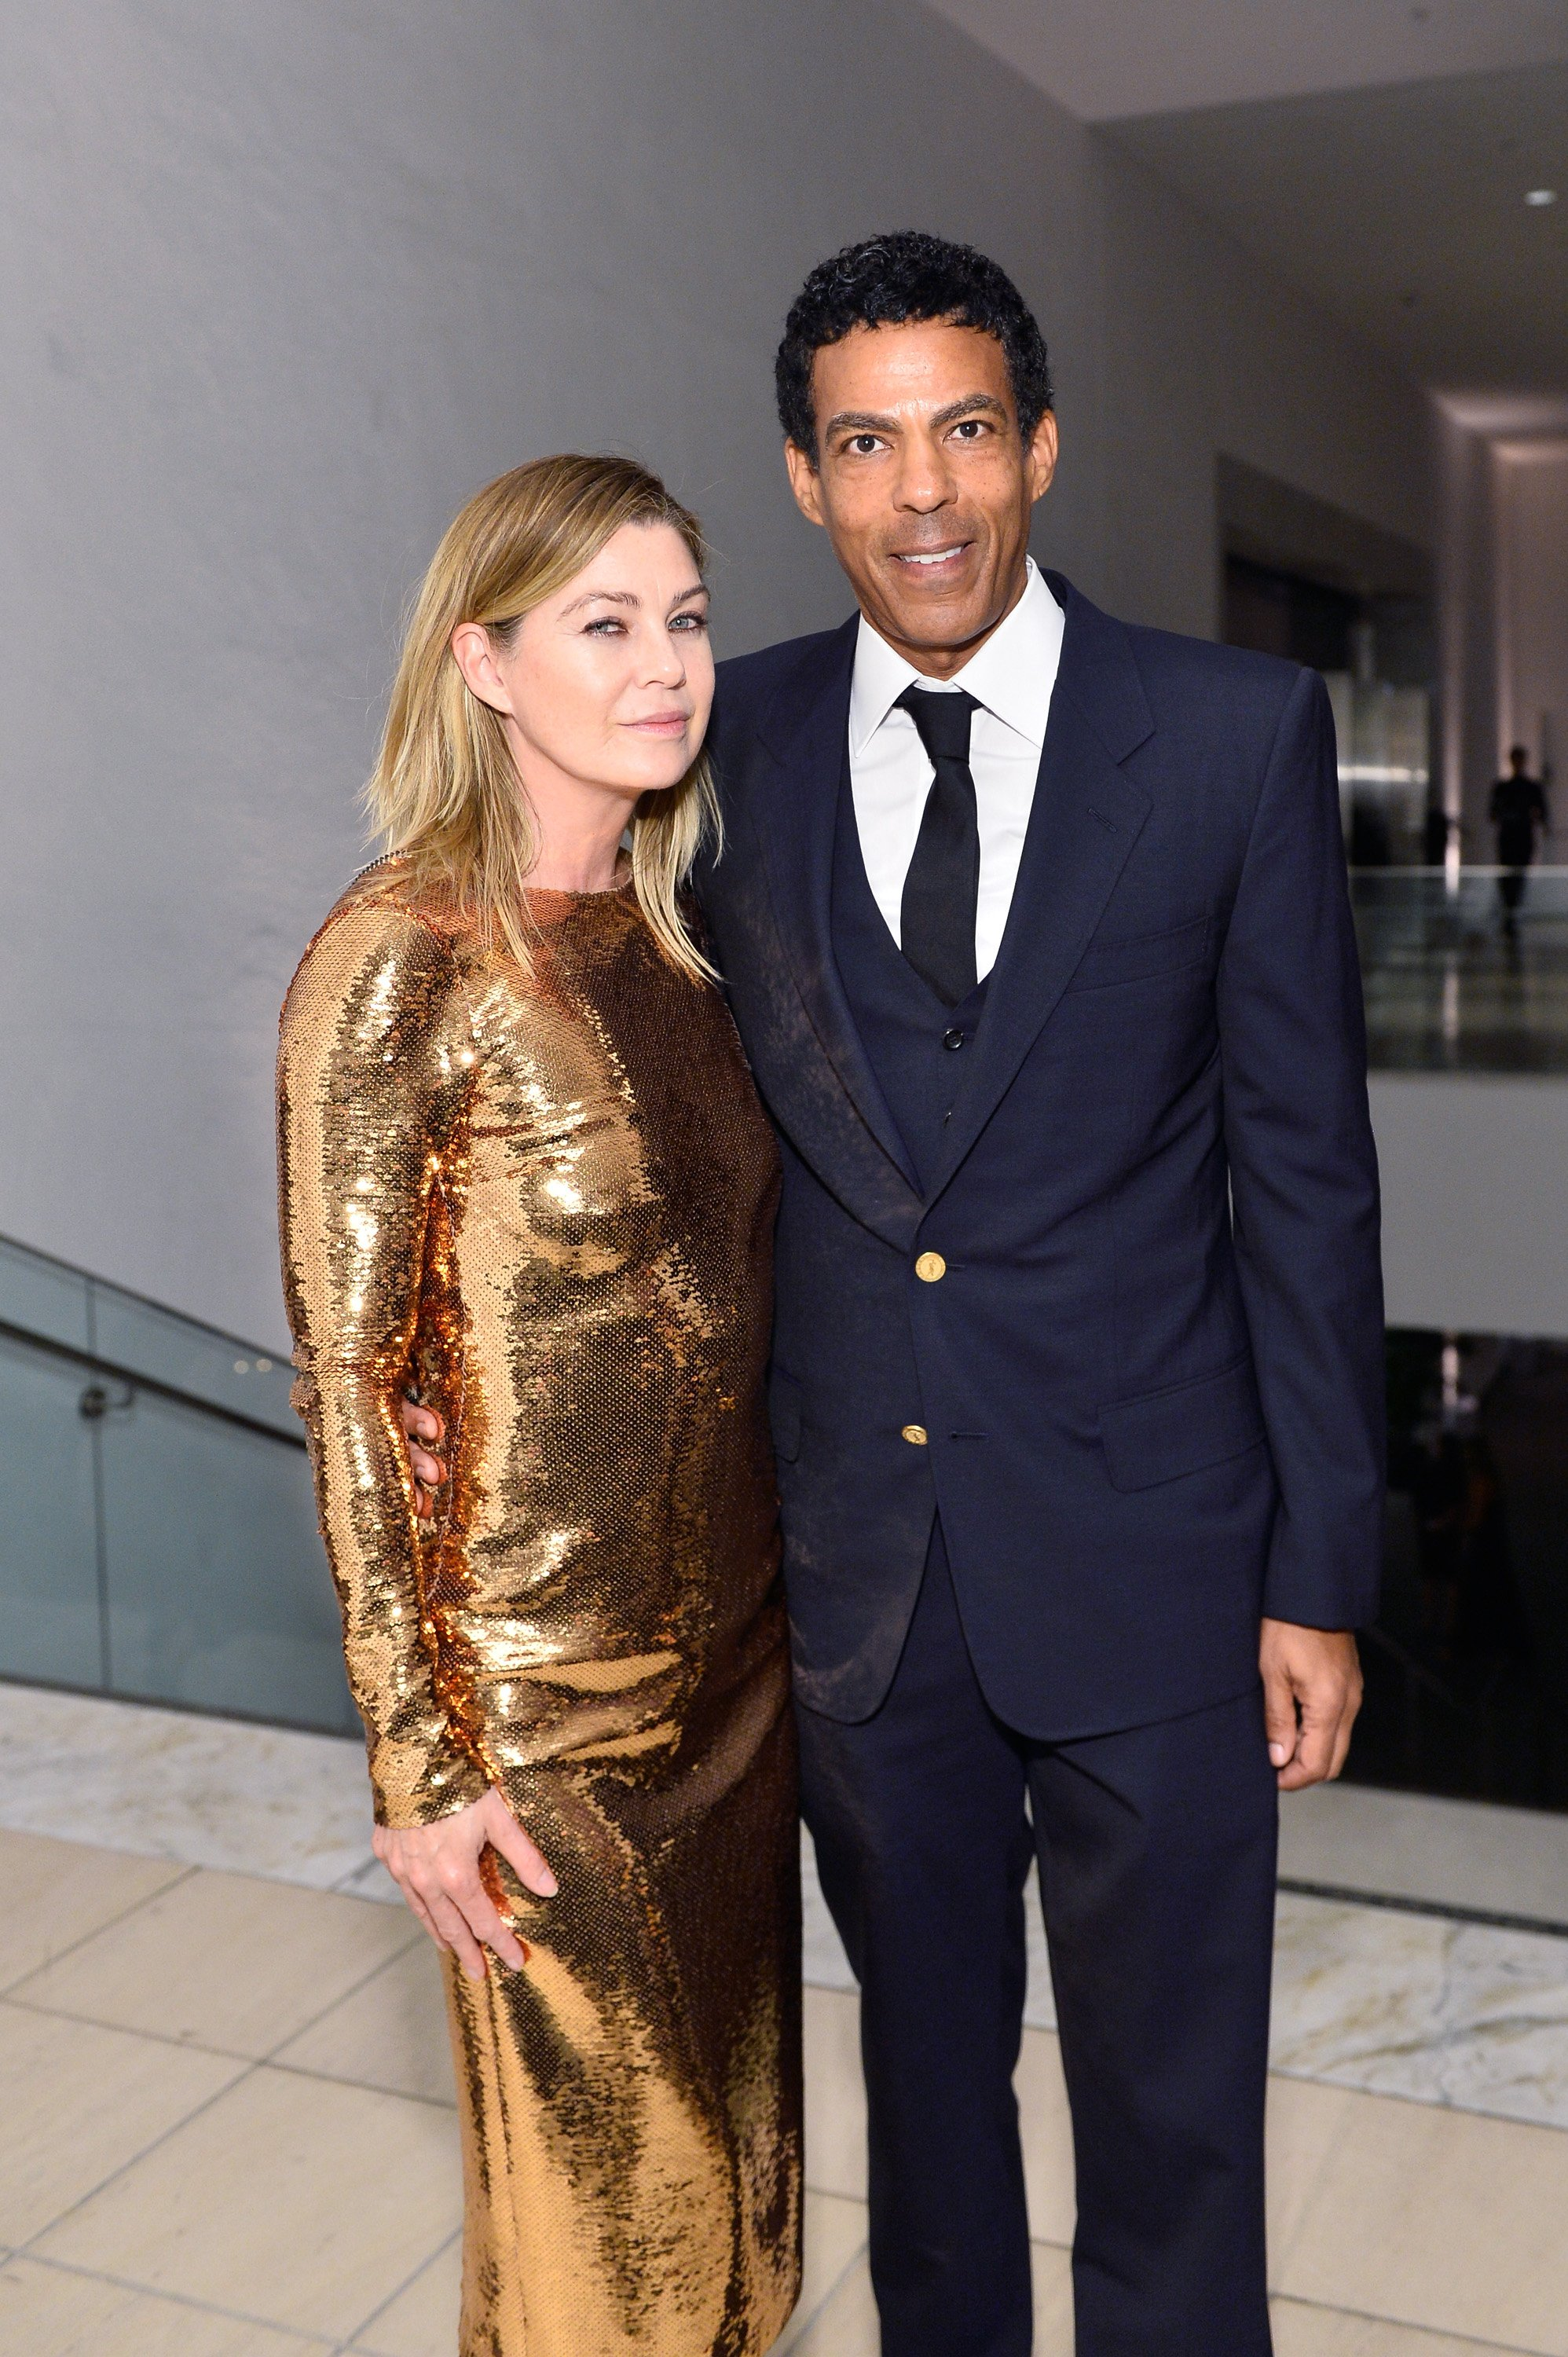 Ellen Pompeo and Chris Ivery at the Hammer Museum 15th Annual Gala on October 14, 2017, in Los Angeles, California. Source: Getty Images.